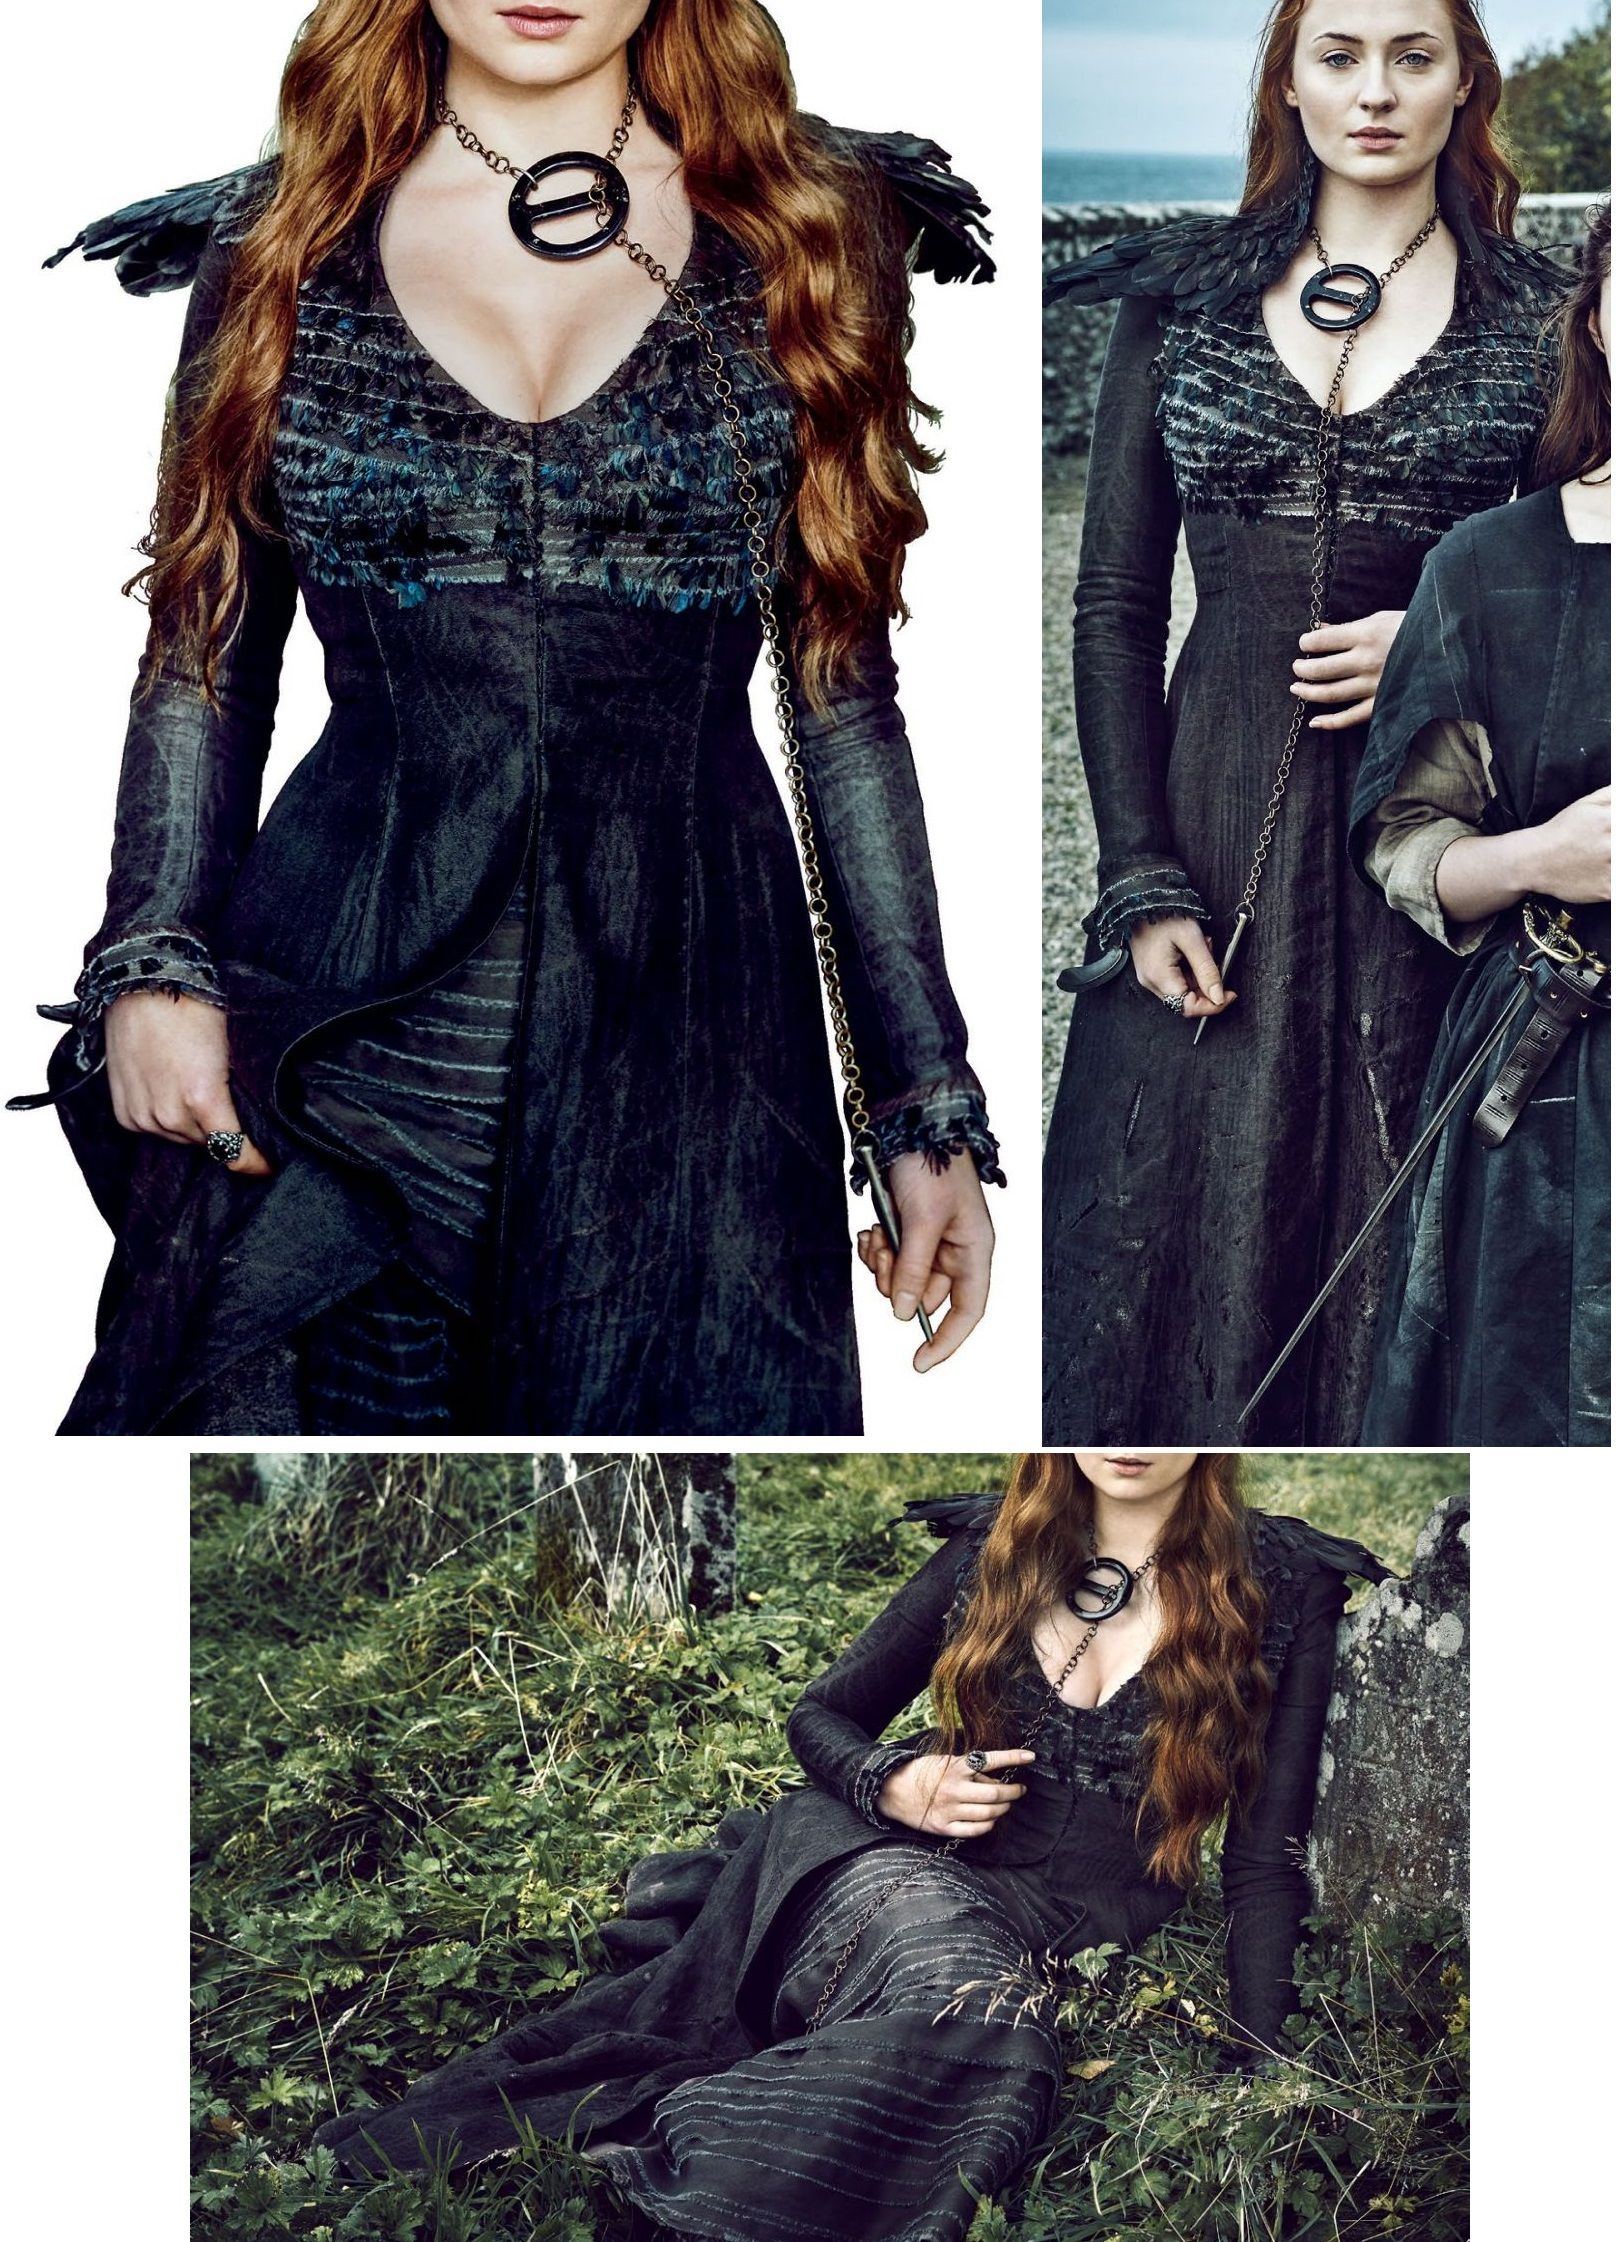 Sansa Stark black dress. //celebmafia.com/sophie-turner  sc 1 st  Pinterest & Sansa Stark black dress. http://celebmafia.com/sophie-turner ...